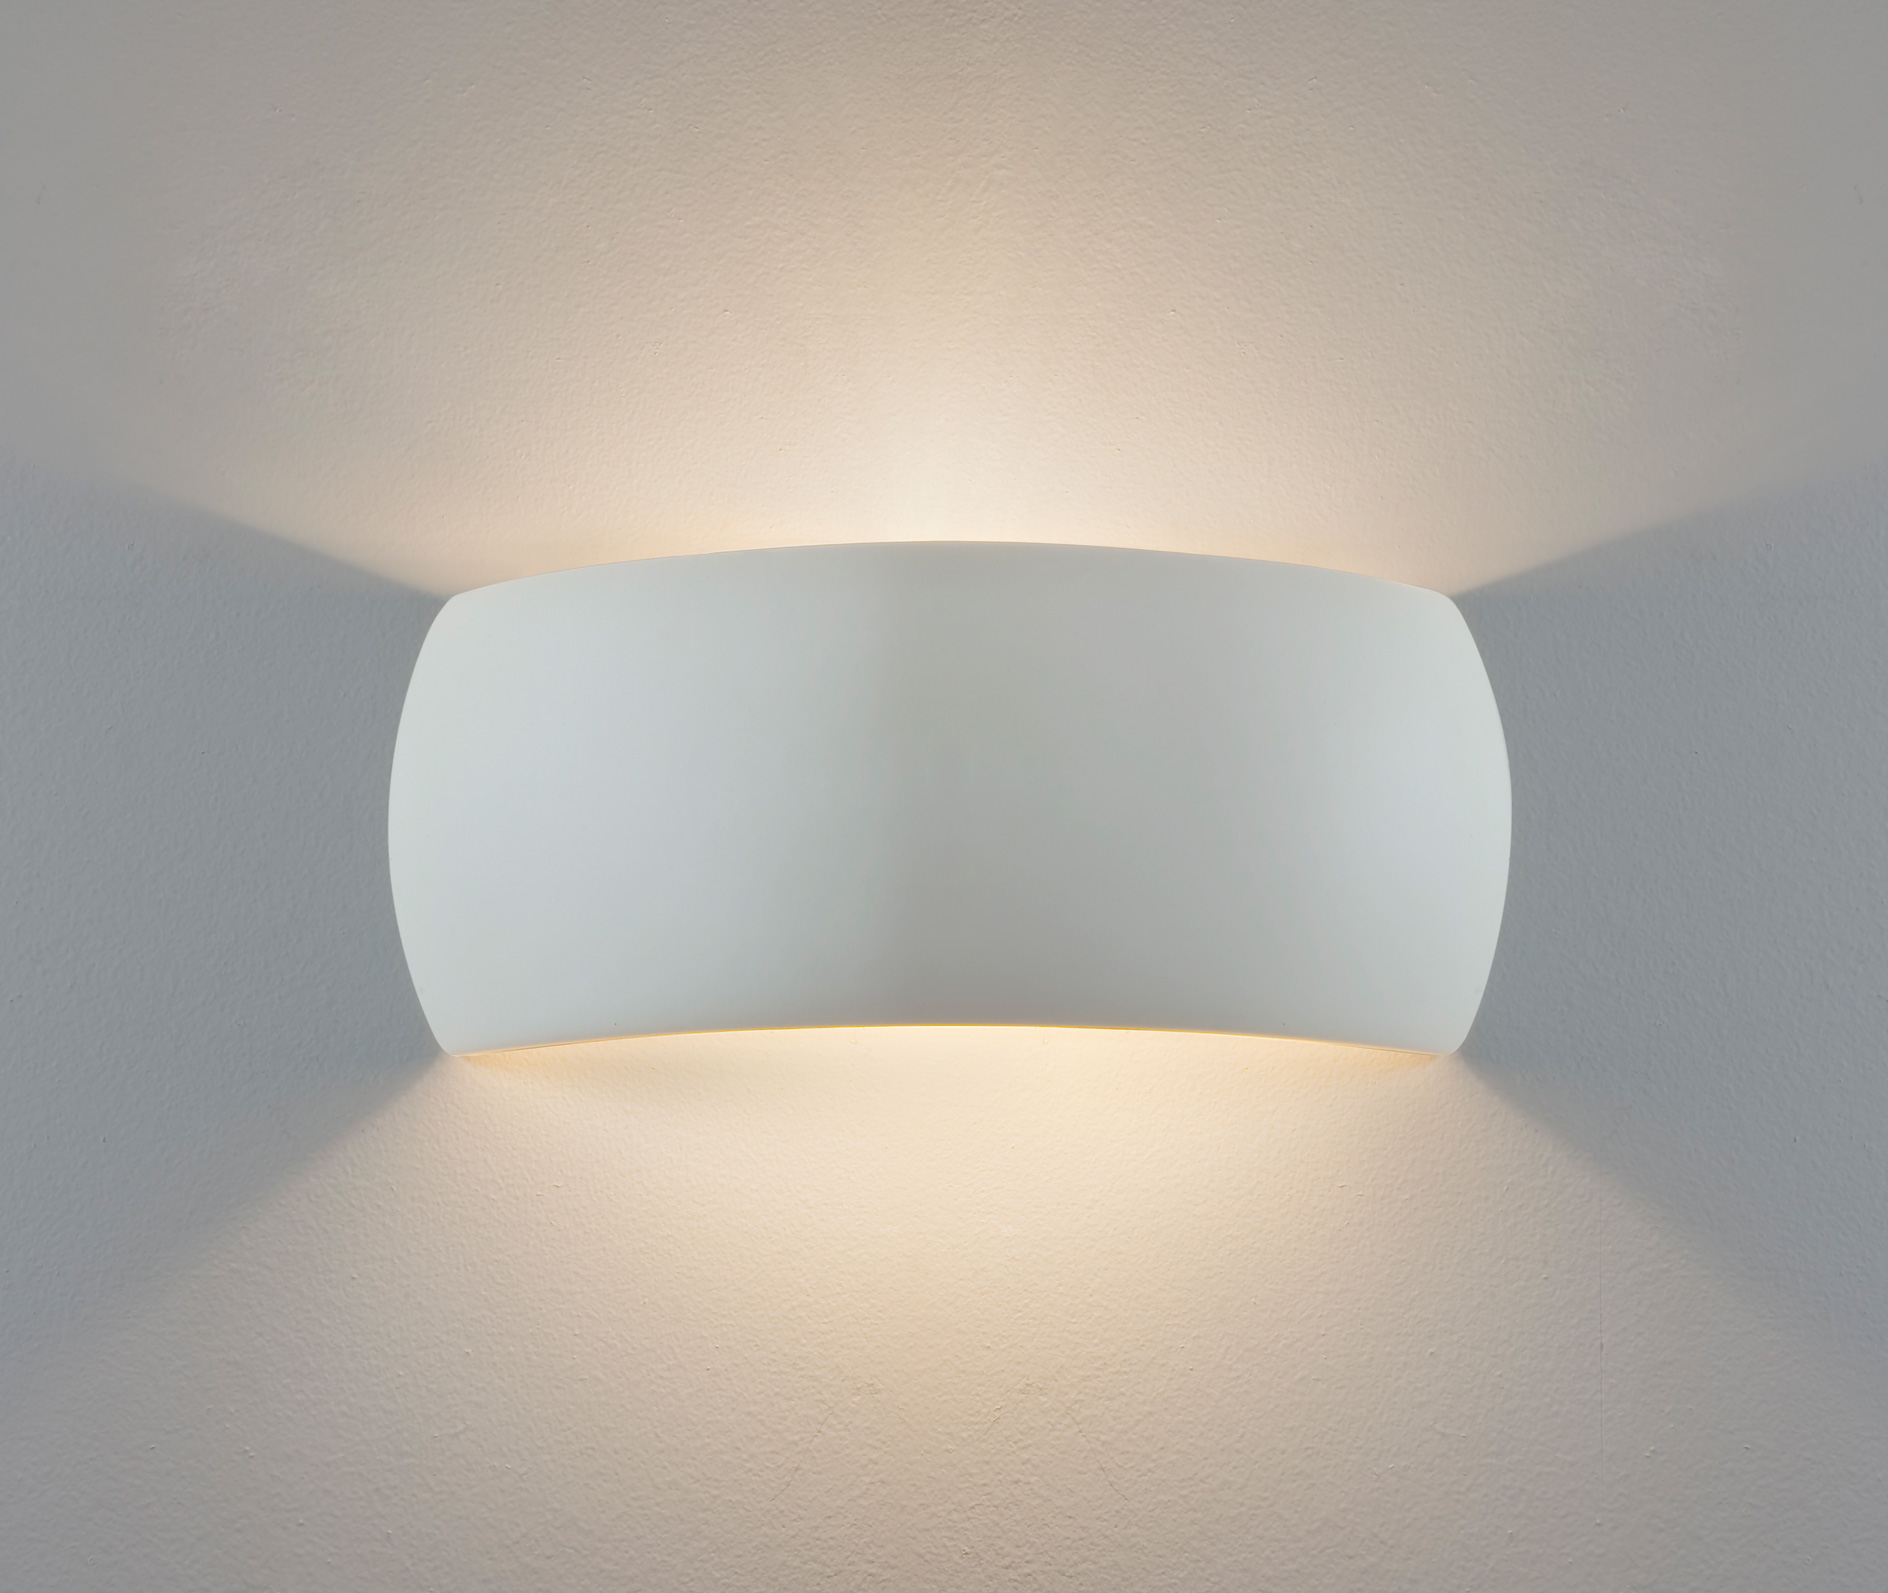 Astro Milo ceramic plaster wall light up down white 60W E27 can be painted